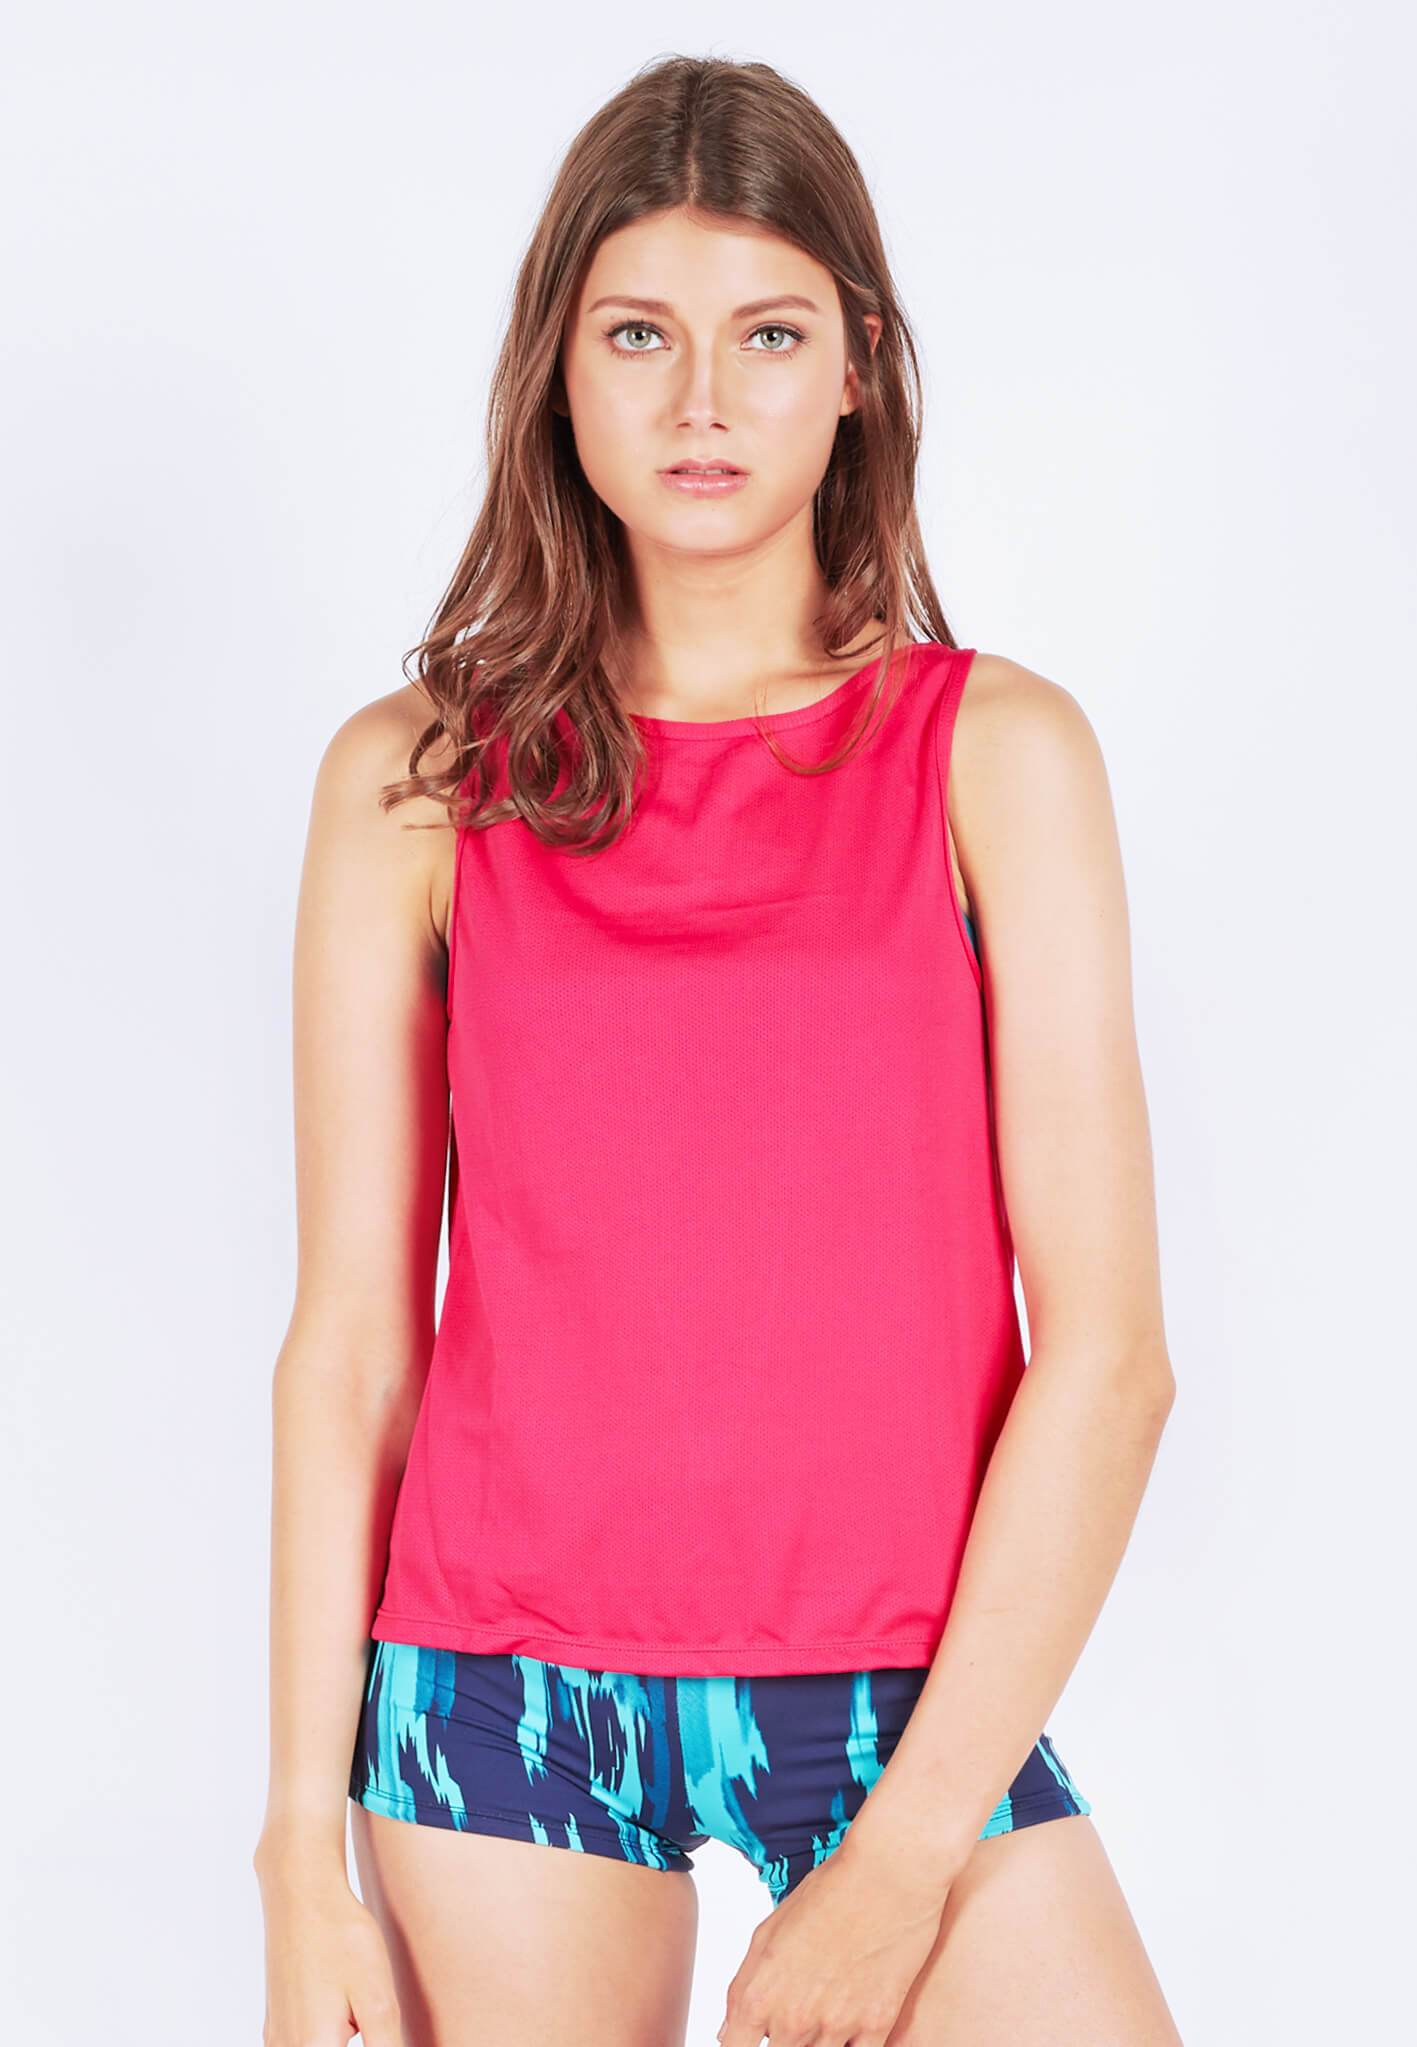 FUNFIT Uplift Tank Top (with Open Back) in Hot Pink (S - XL)